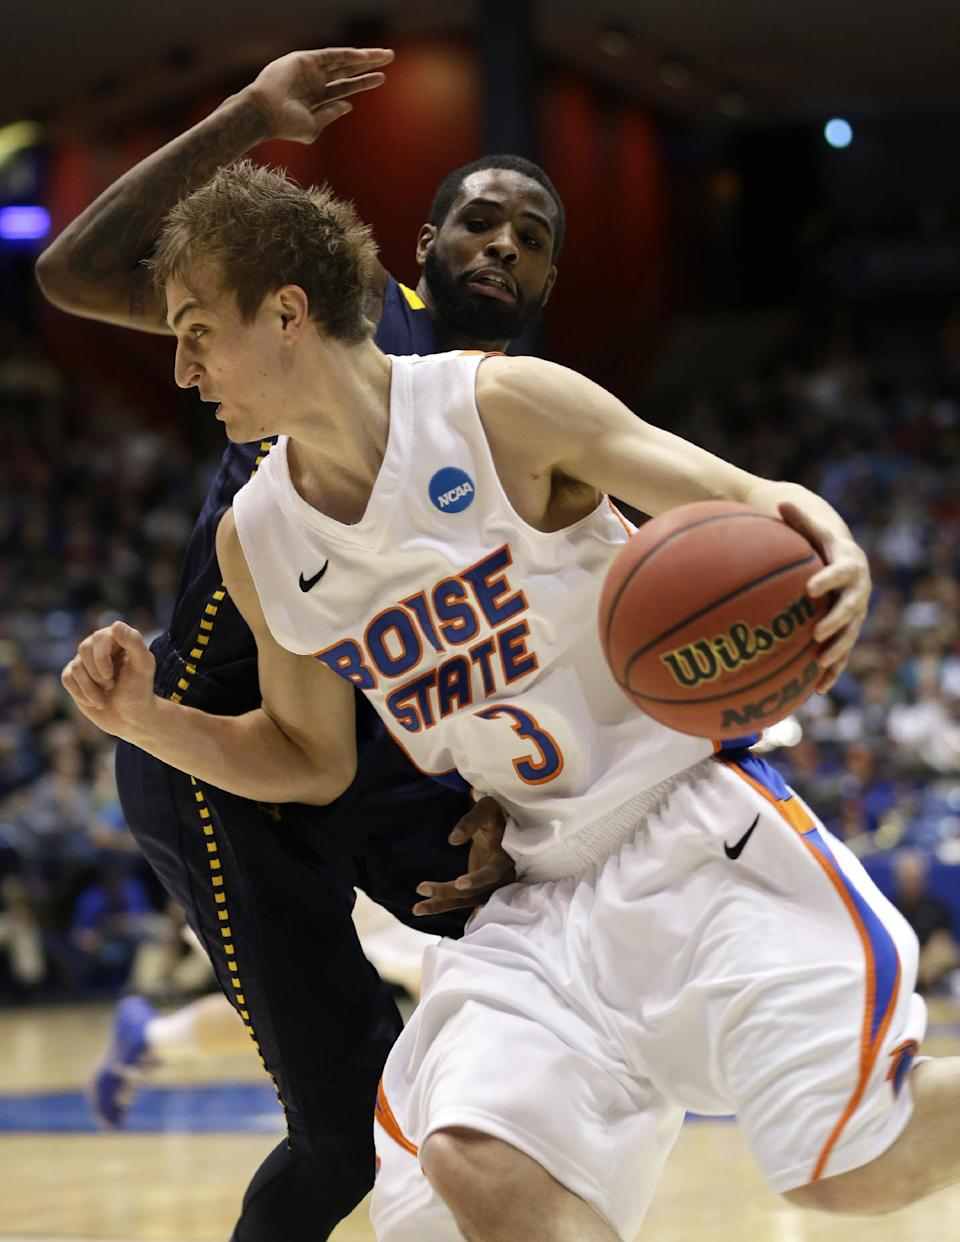 Boise State guard Anthony Drmic (3) drives past La Salle guard Ramon Galloway in the first half of a first-round game of the NCAA college basketball tournament, Wednesday, March 20, 2013, in Dayton, Ohio. (AP Photo/Al Behrman)